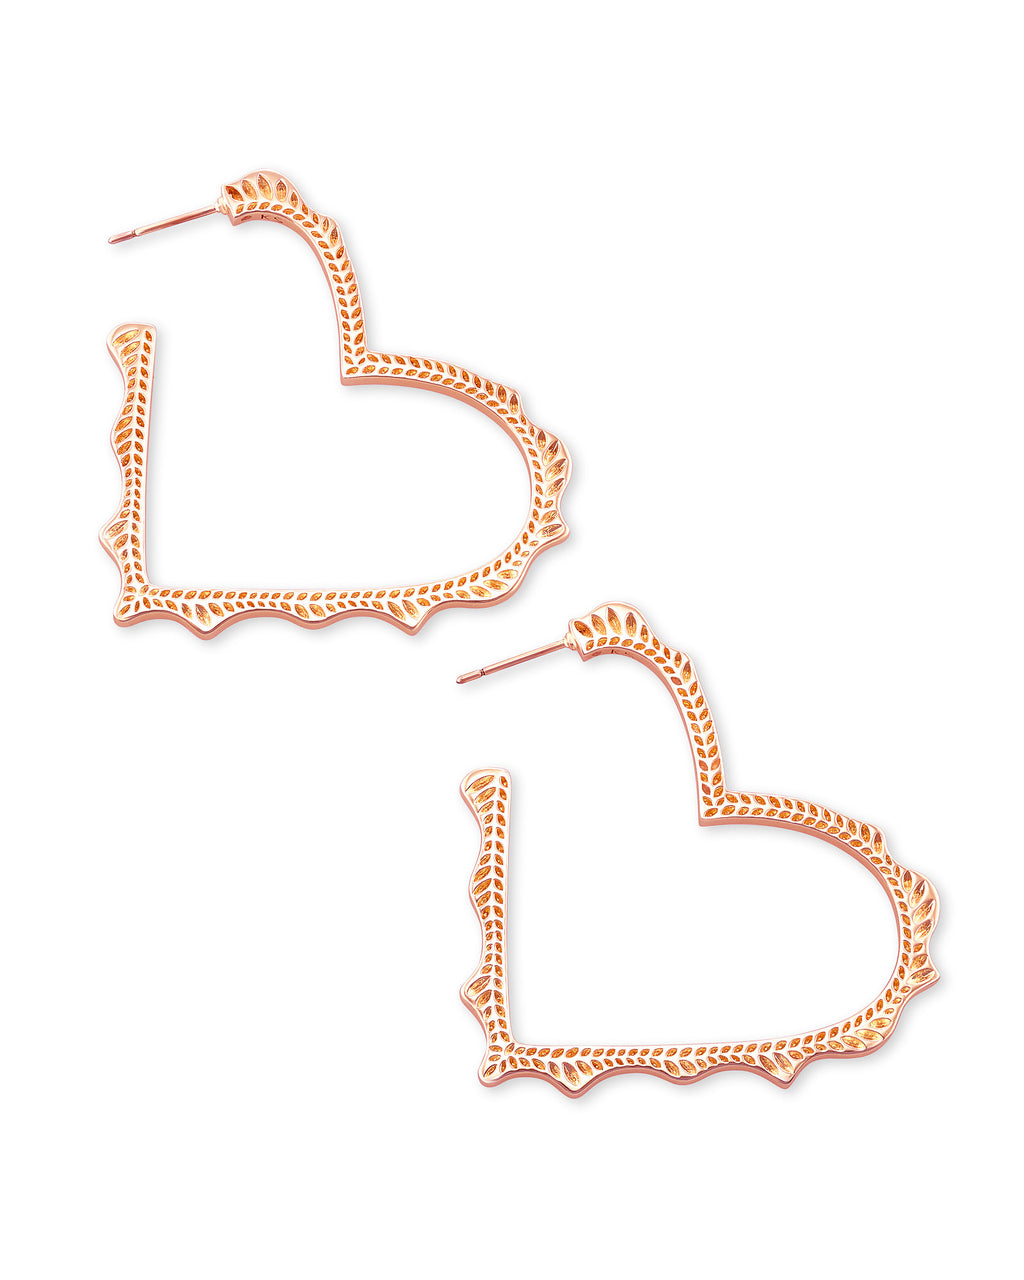 Kendra Scott Sophee Heart Hoop Earrings - Rose Gold